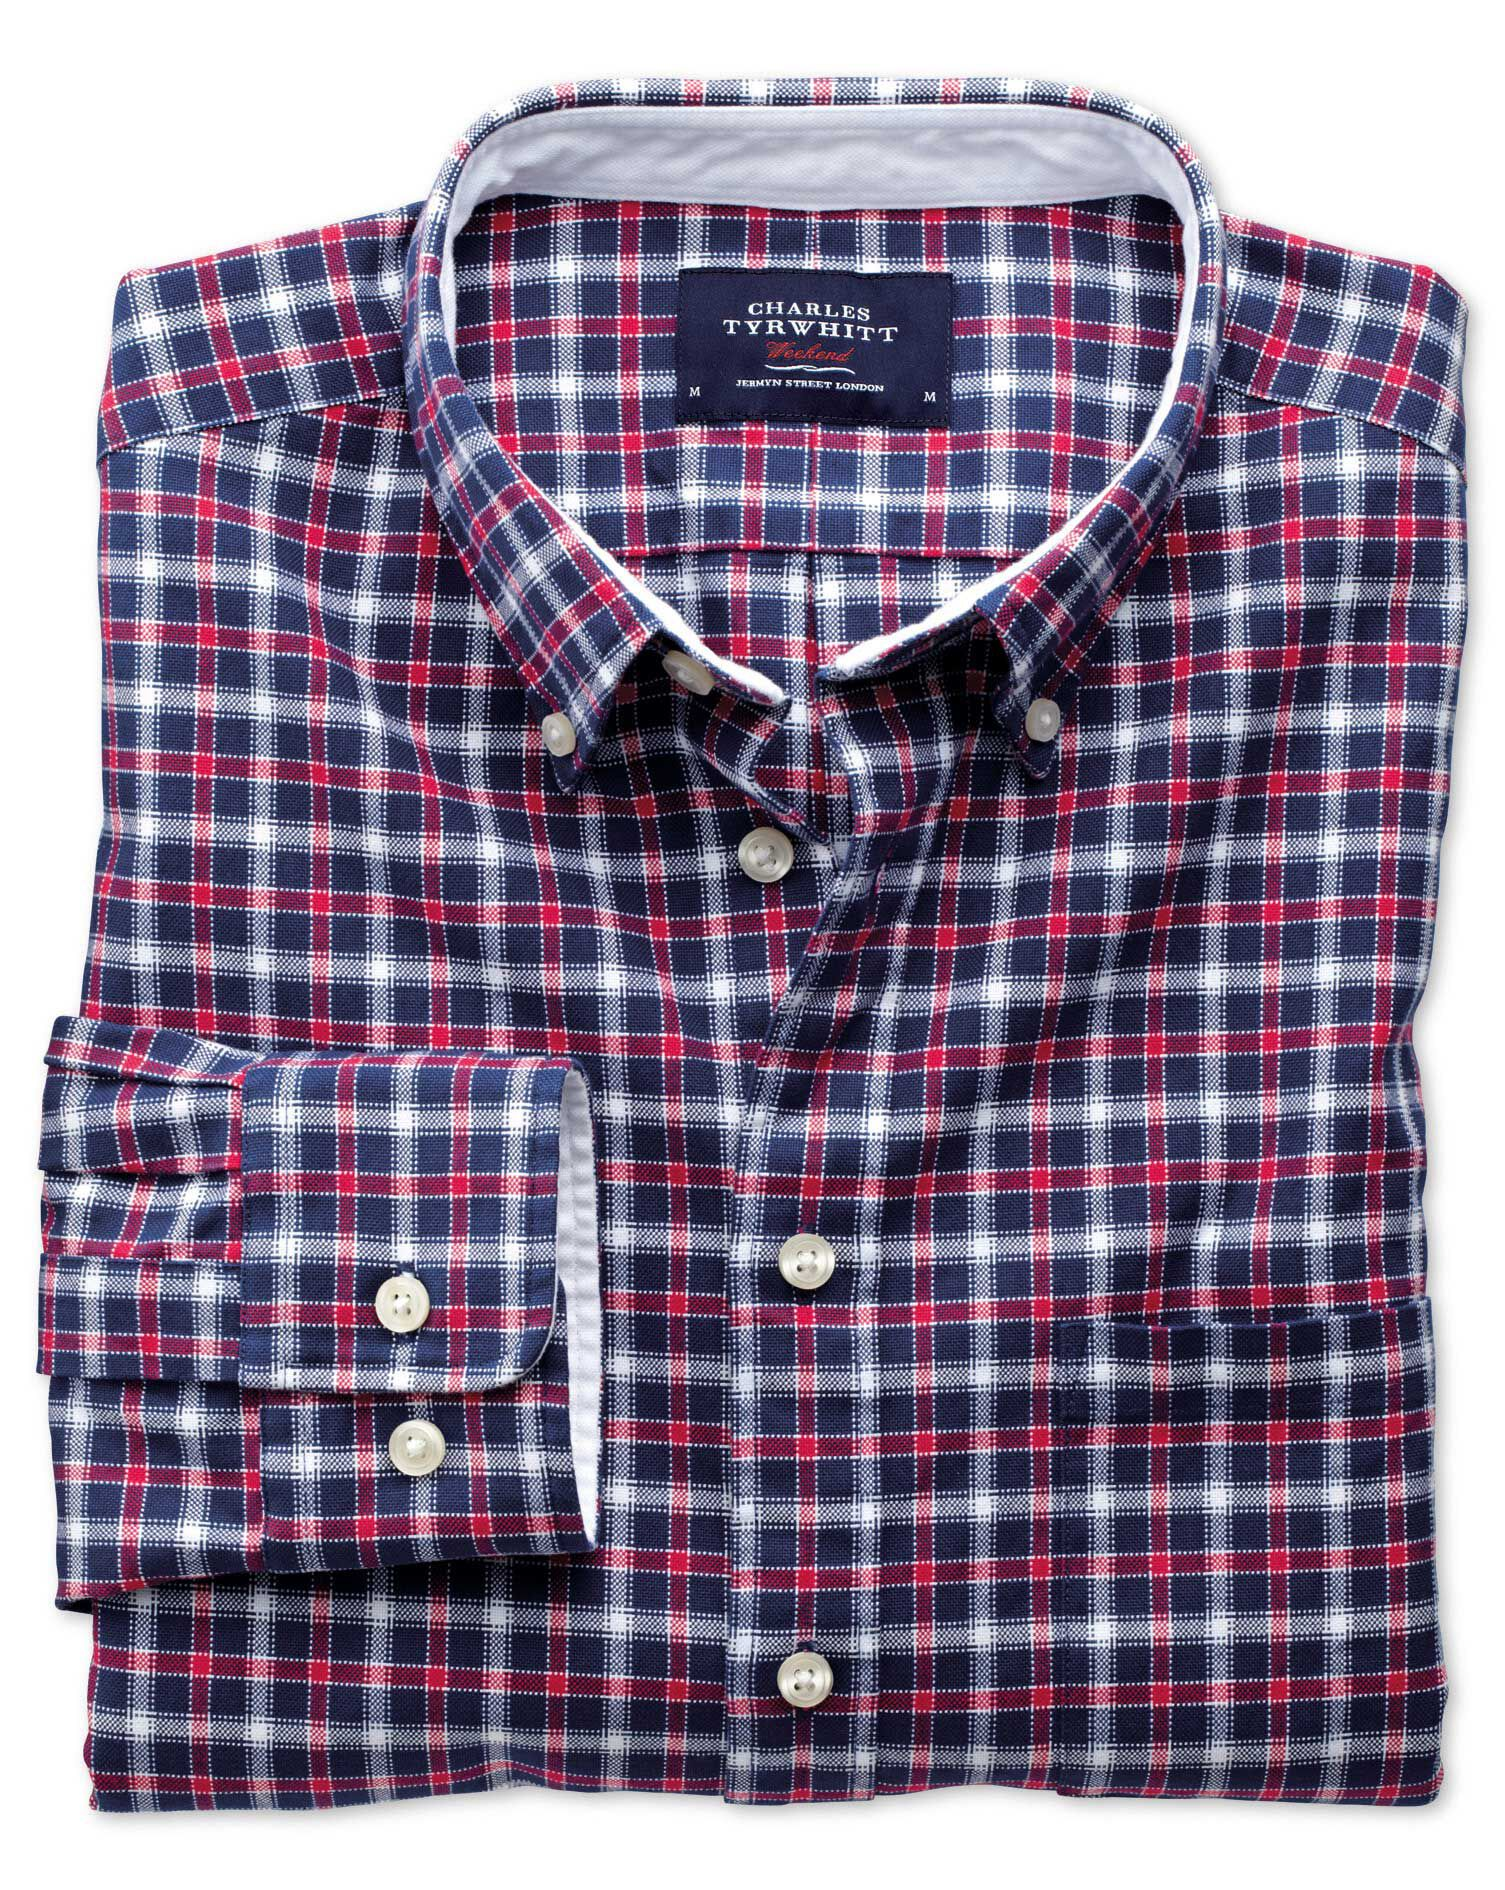 Extra Slim Fit Blue and Red Check Washed Oxford Cotton Shirt Single Cuff Size XS by Charles Tyrwhitt